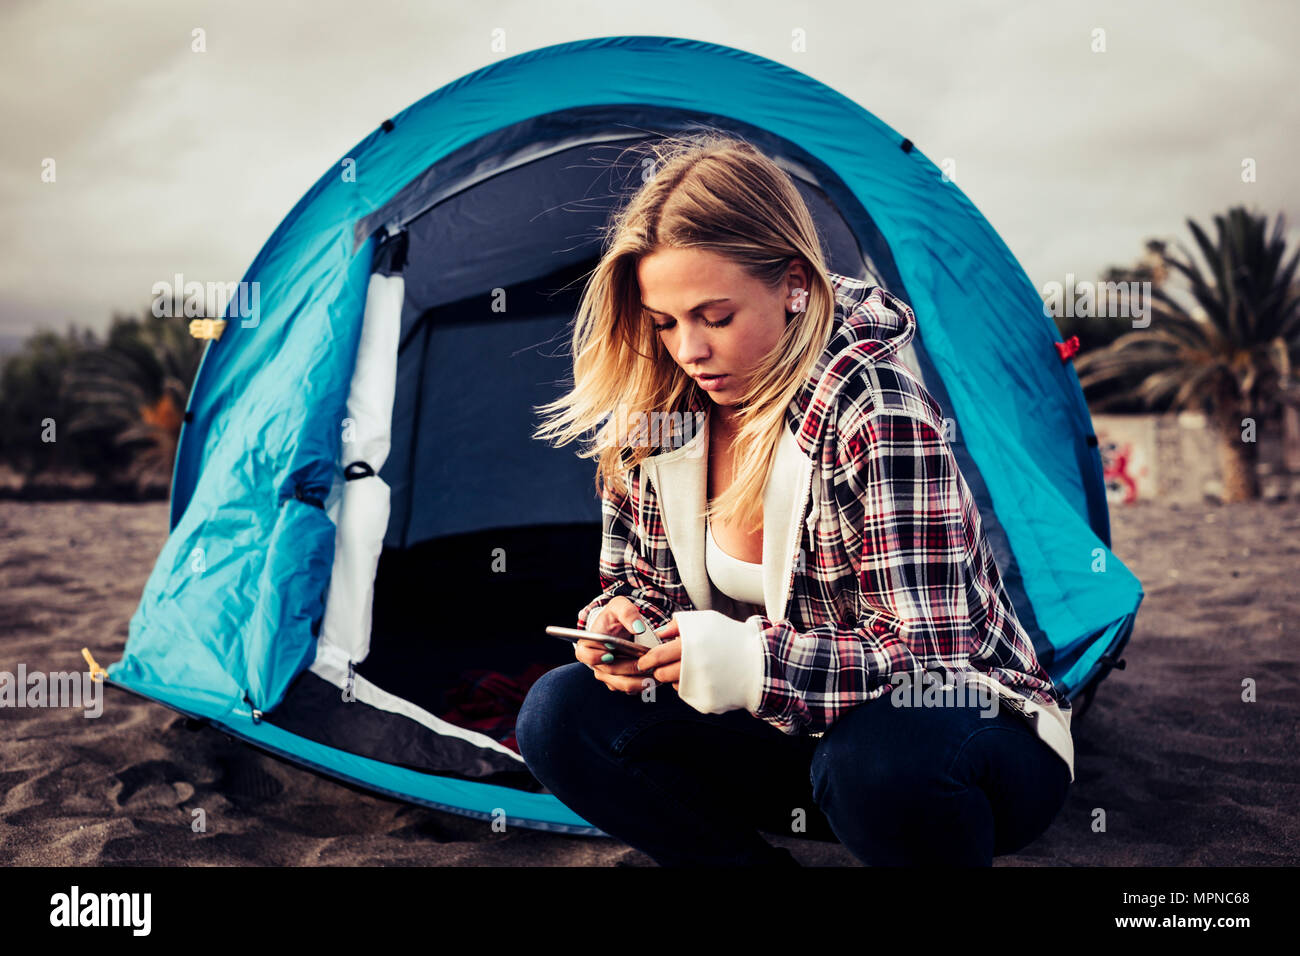 Always connected with technology blonde young woman stay ouside of her tent on the beach to enjoy freedom from work. - Stock Image